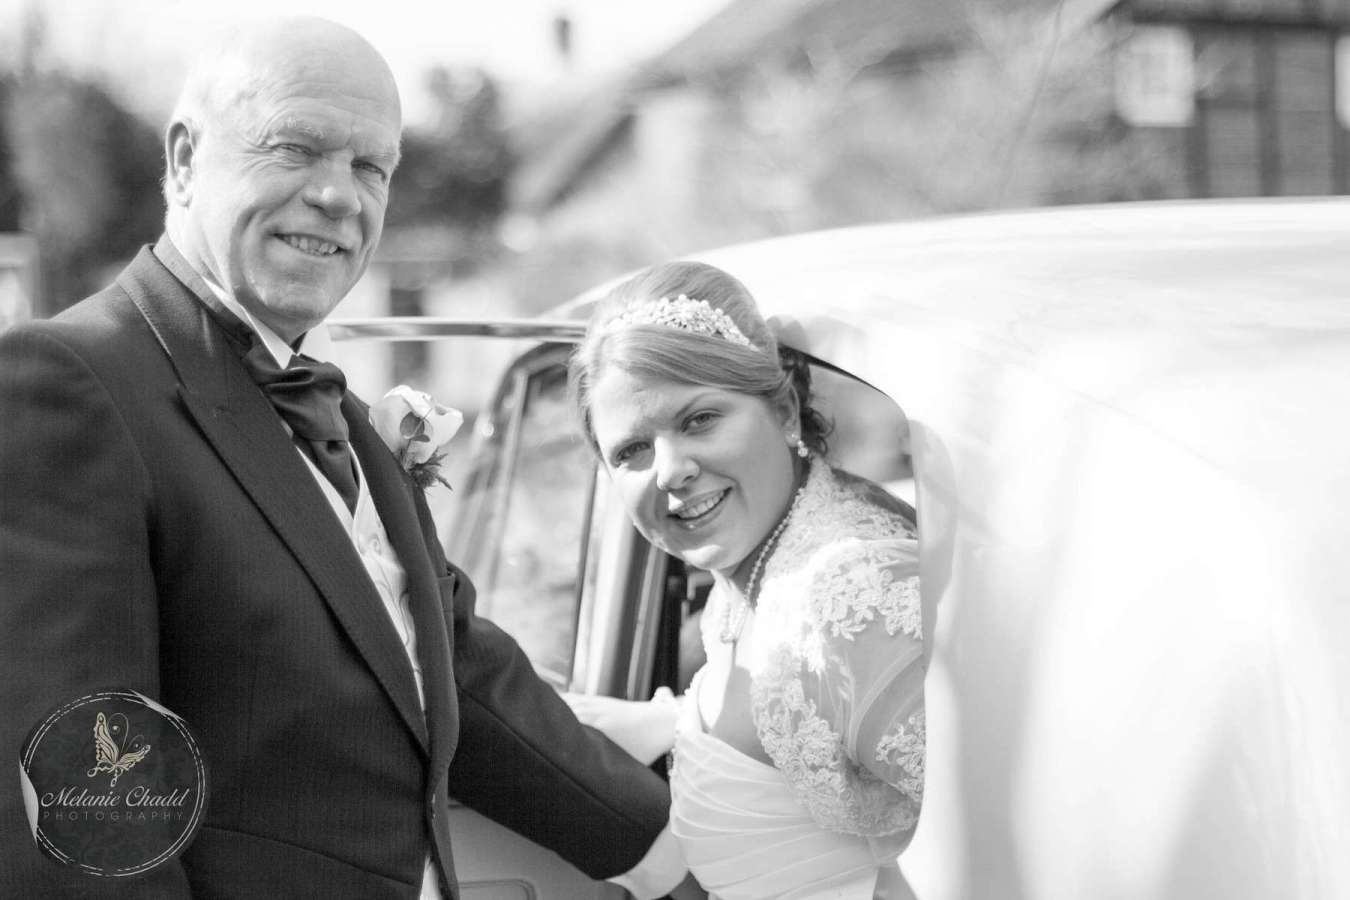 Bride arriving at the church with her Father